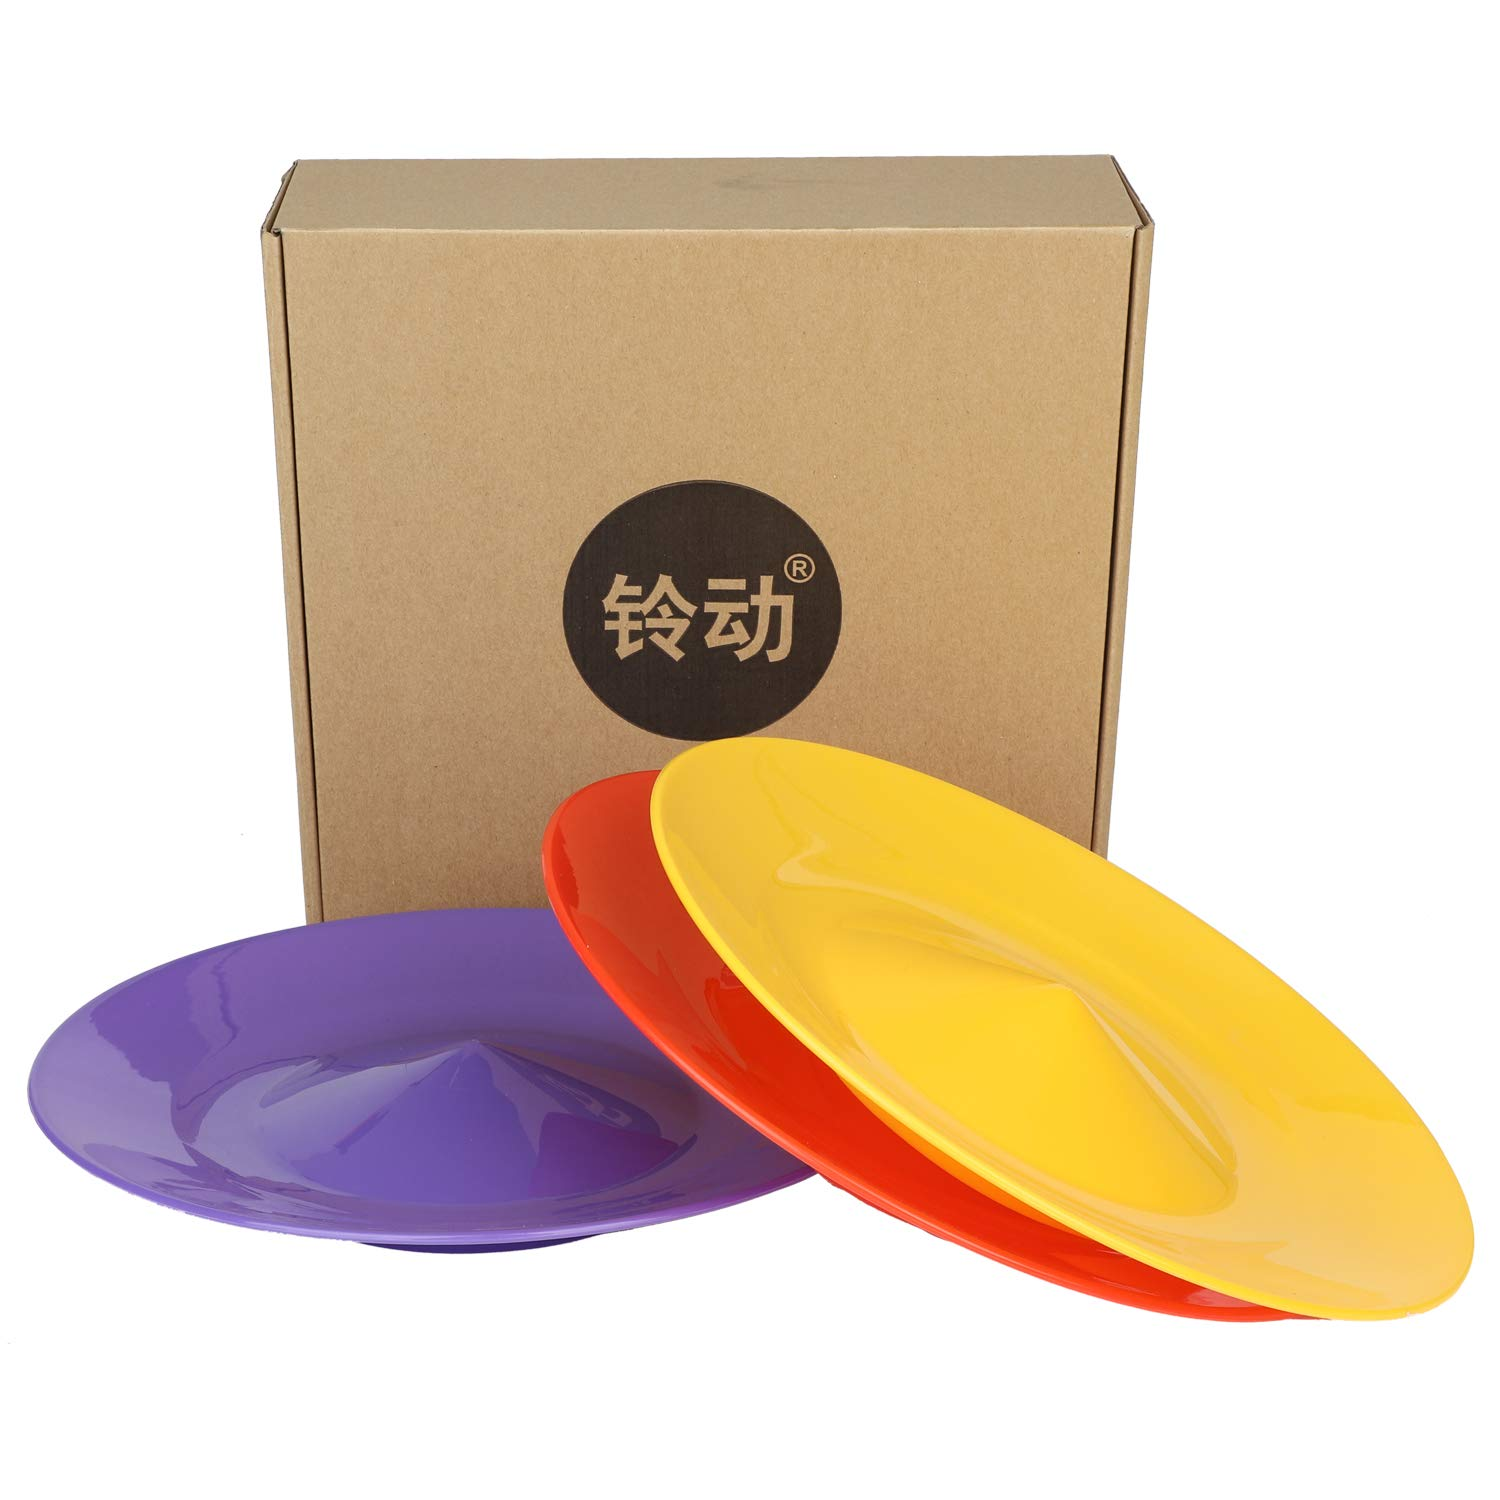 YuXing Professional Spinning Plates / Juggling Plates Set of 3 (11'' 3.8OZ Red Yellow Purple) with 3 Durable Sticks (22.6 Inches 0.7 Ounce) Fit All by YuXing TOY (Image #2)